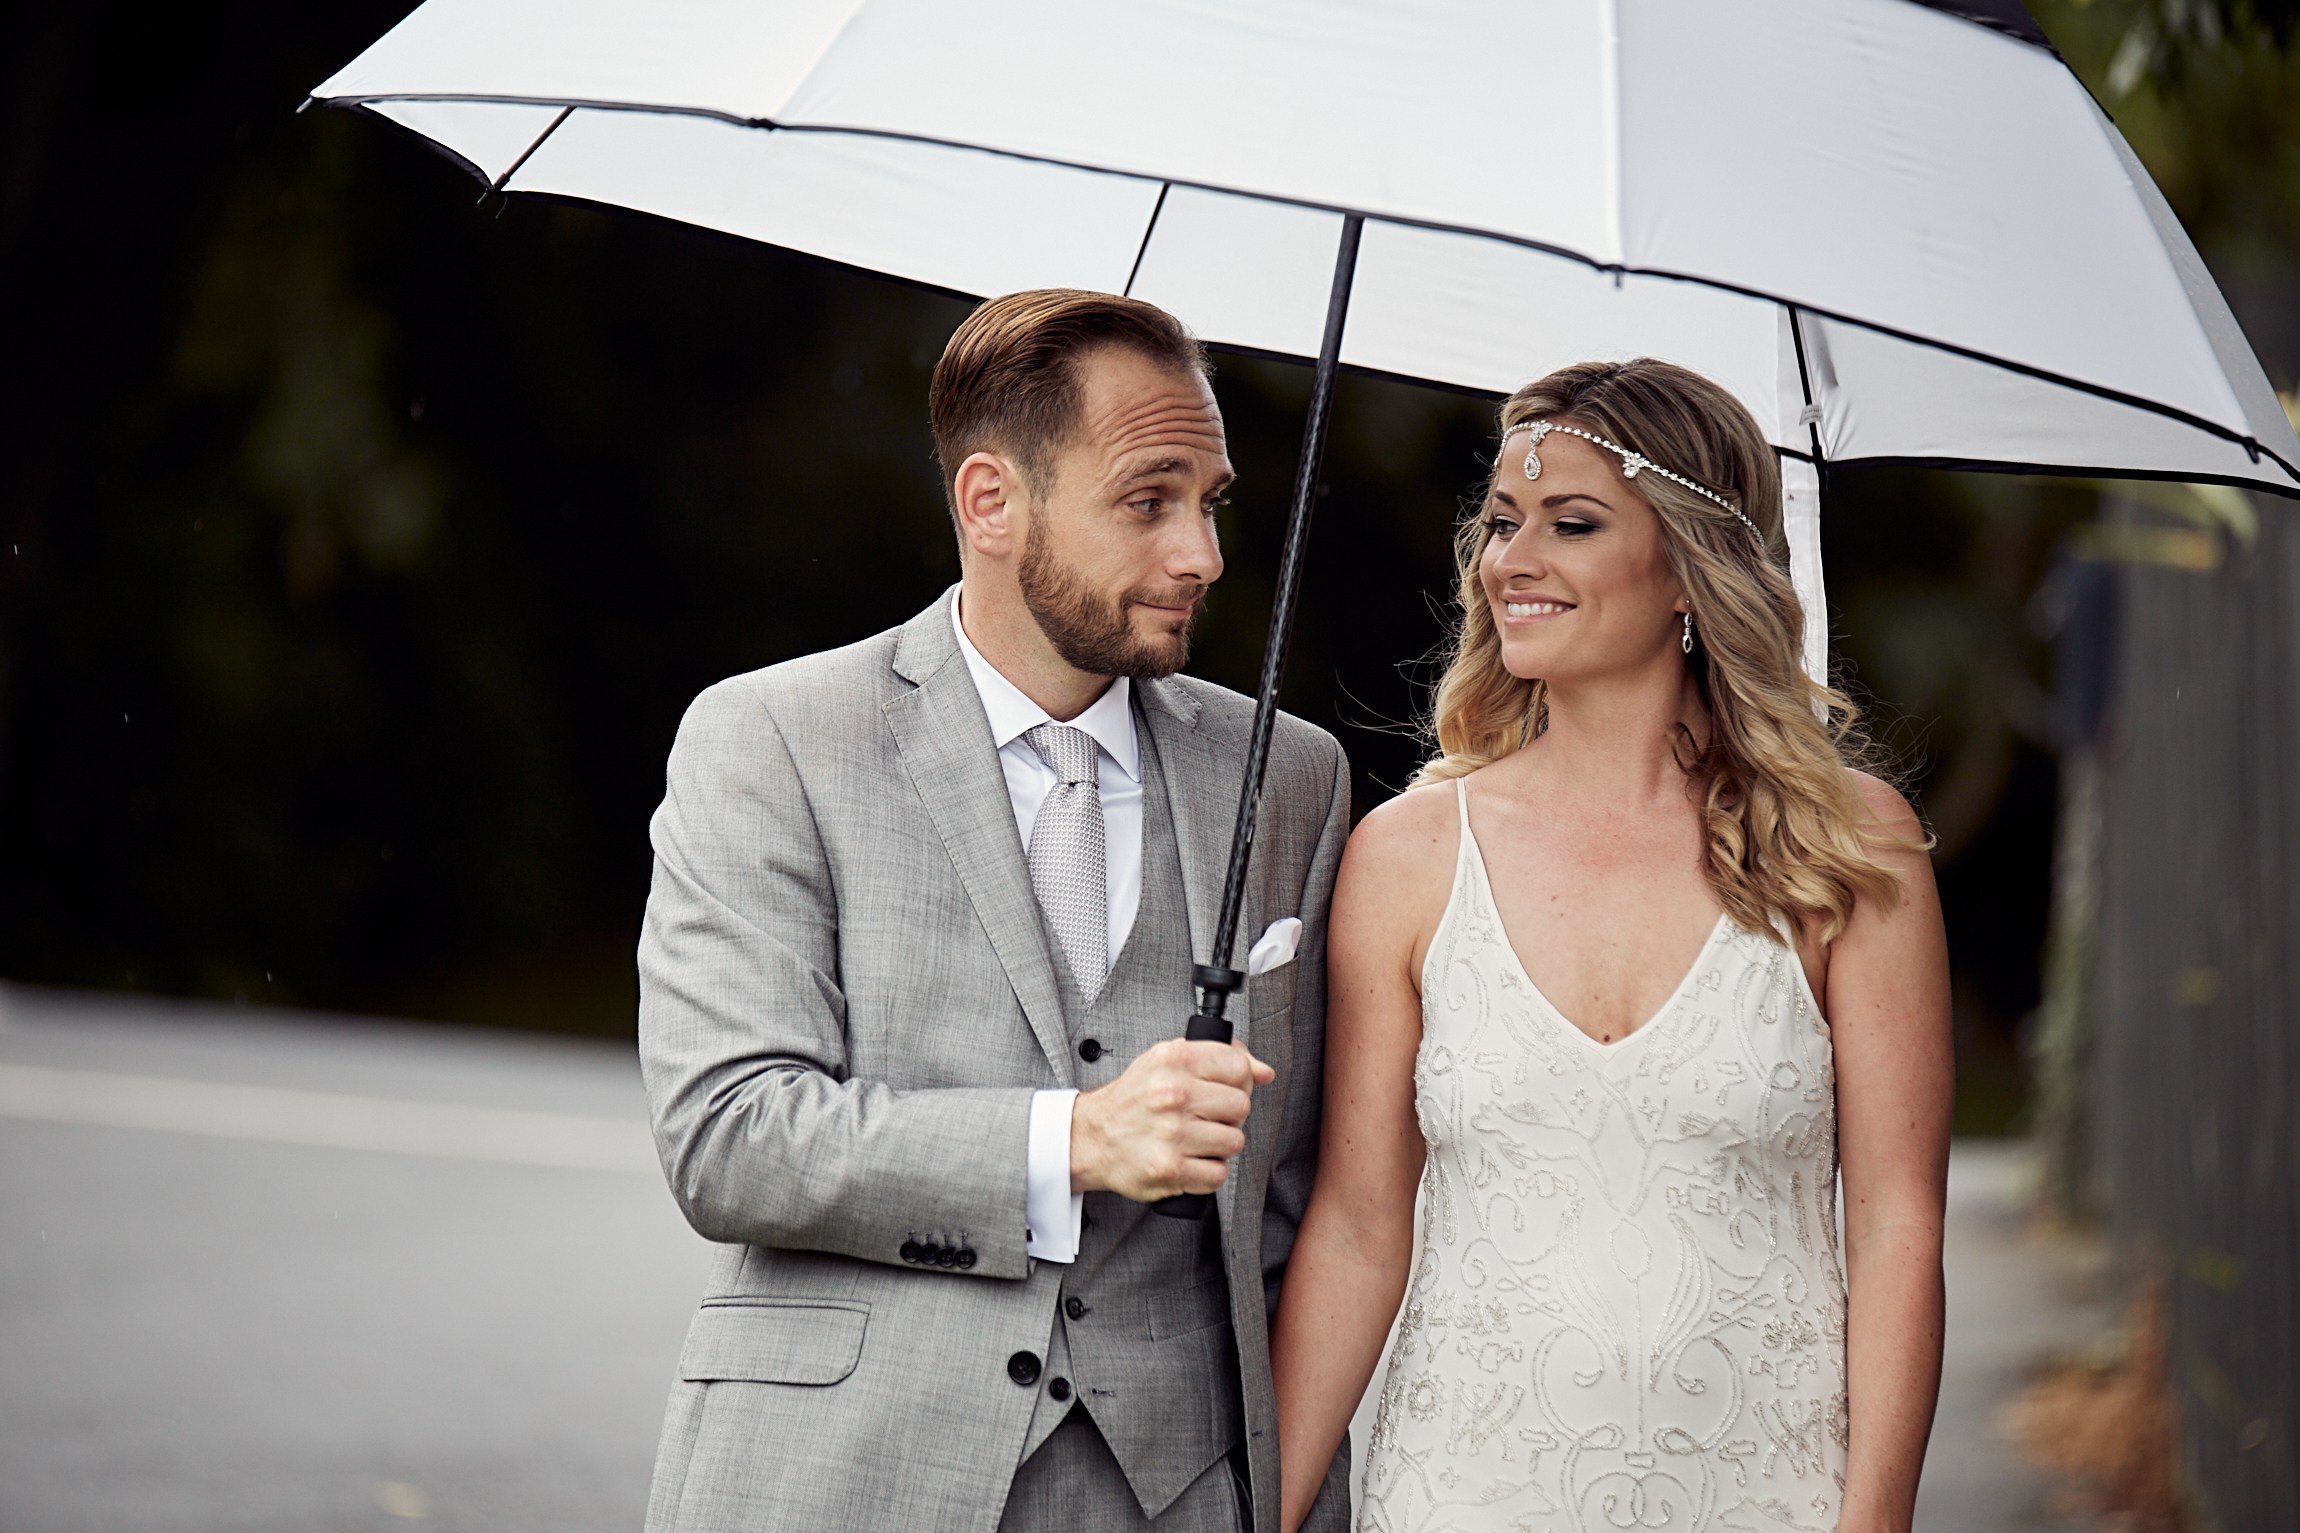 Newlyweds under an umbrella